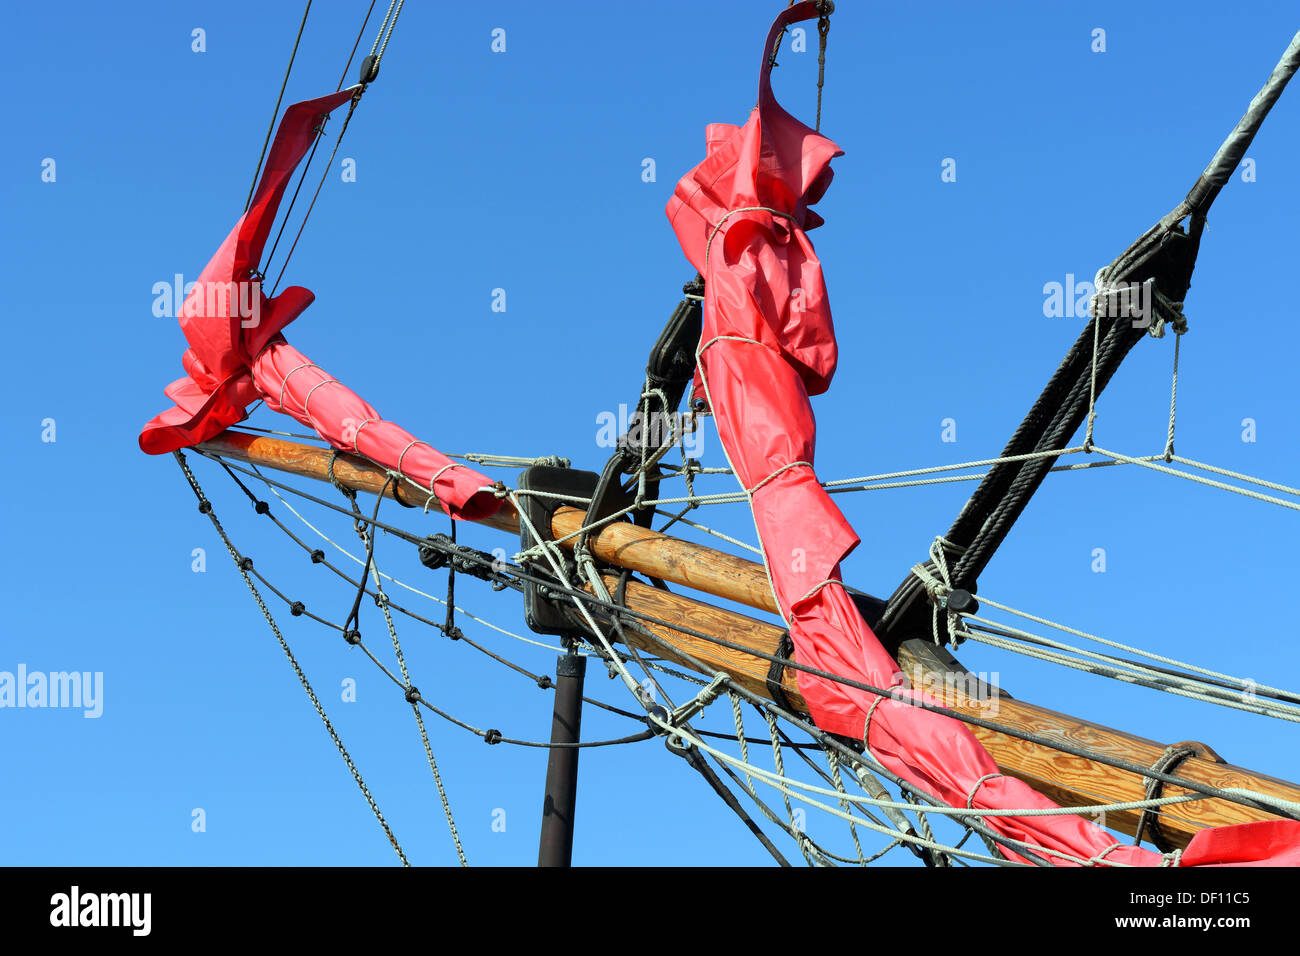 Bow Sprite, Earle of Pembroke, Tall Ship, Pirate Boat, Cowes, Isle of Wight, England, UK, GB. - Stock Image